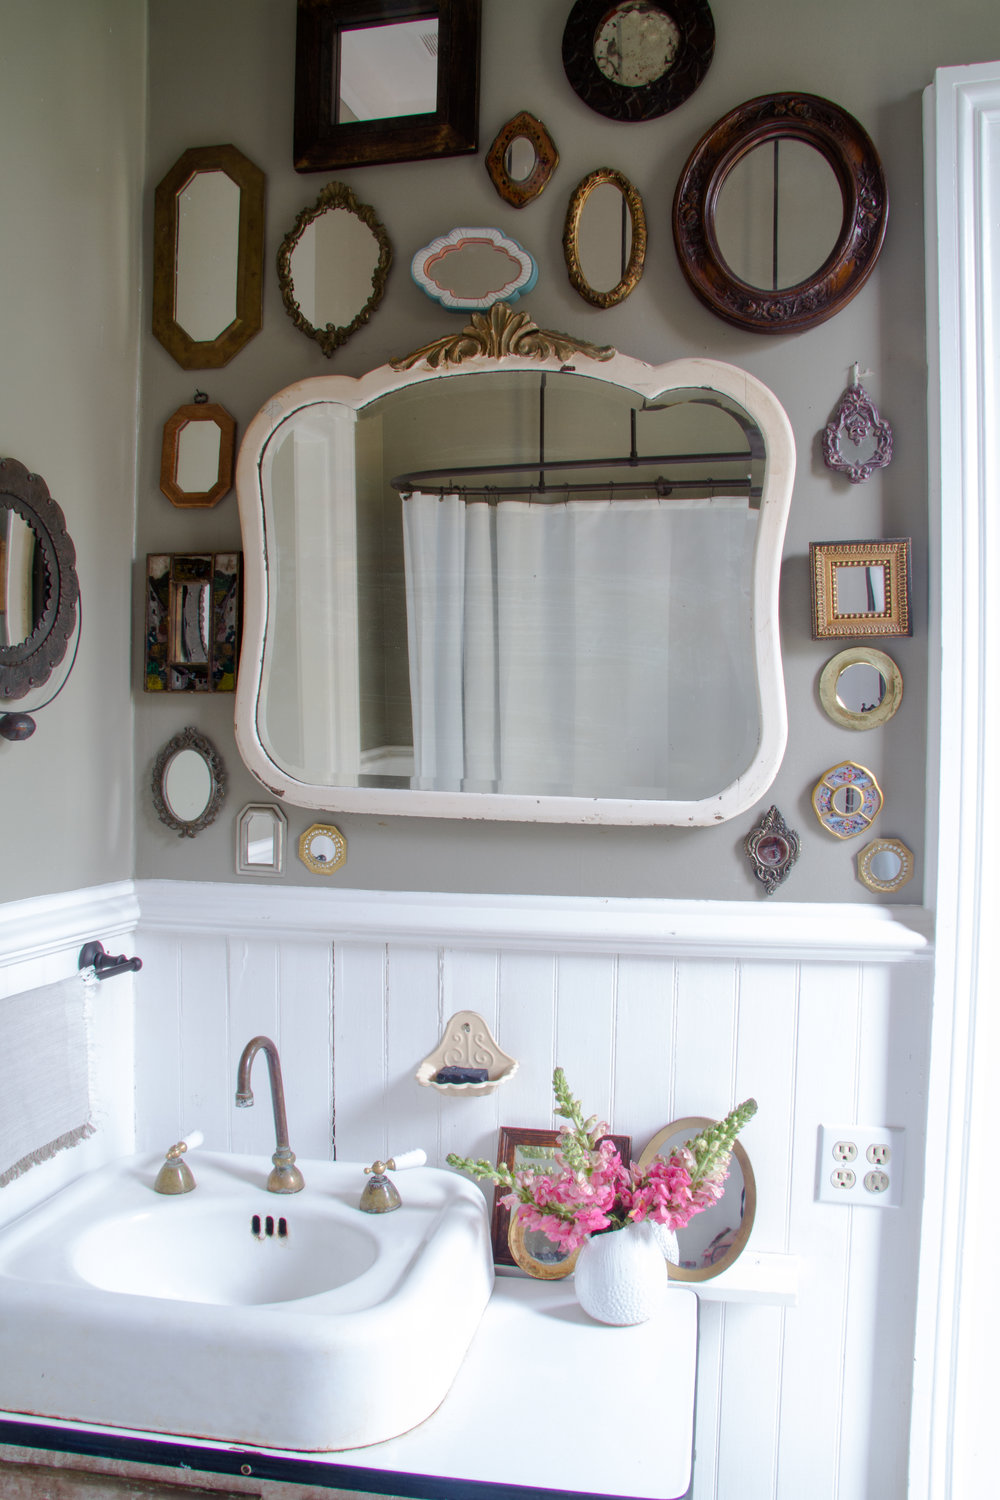 (11/21) The family bathroom with a mirror collection that will eventually cover all of the walls.